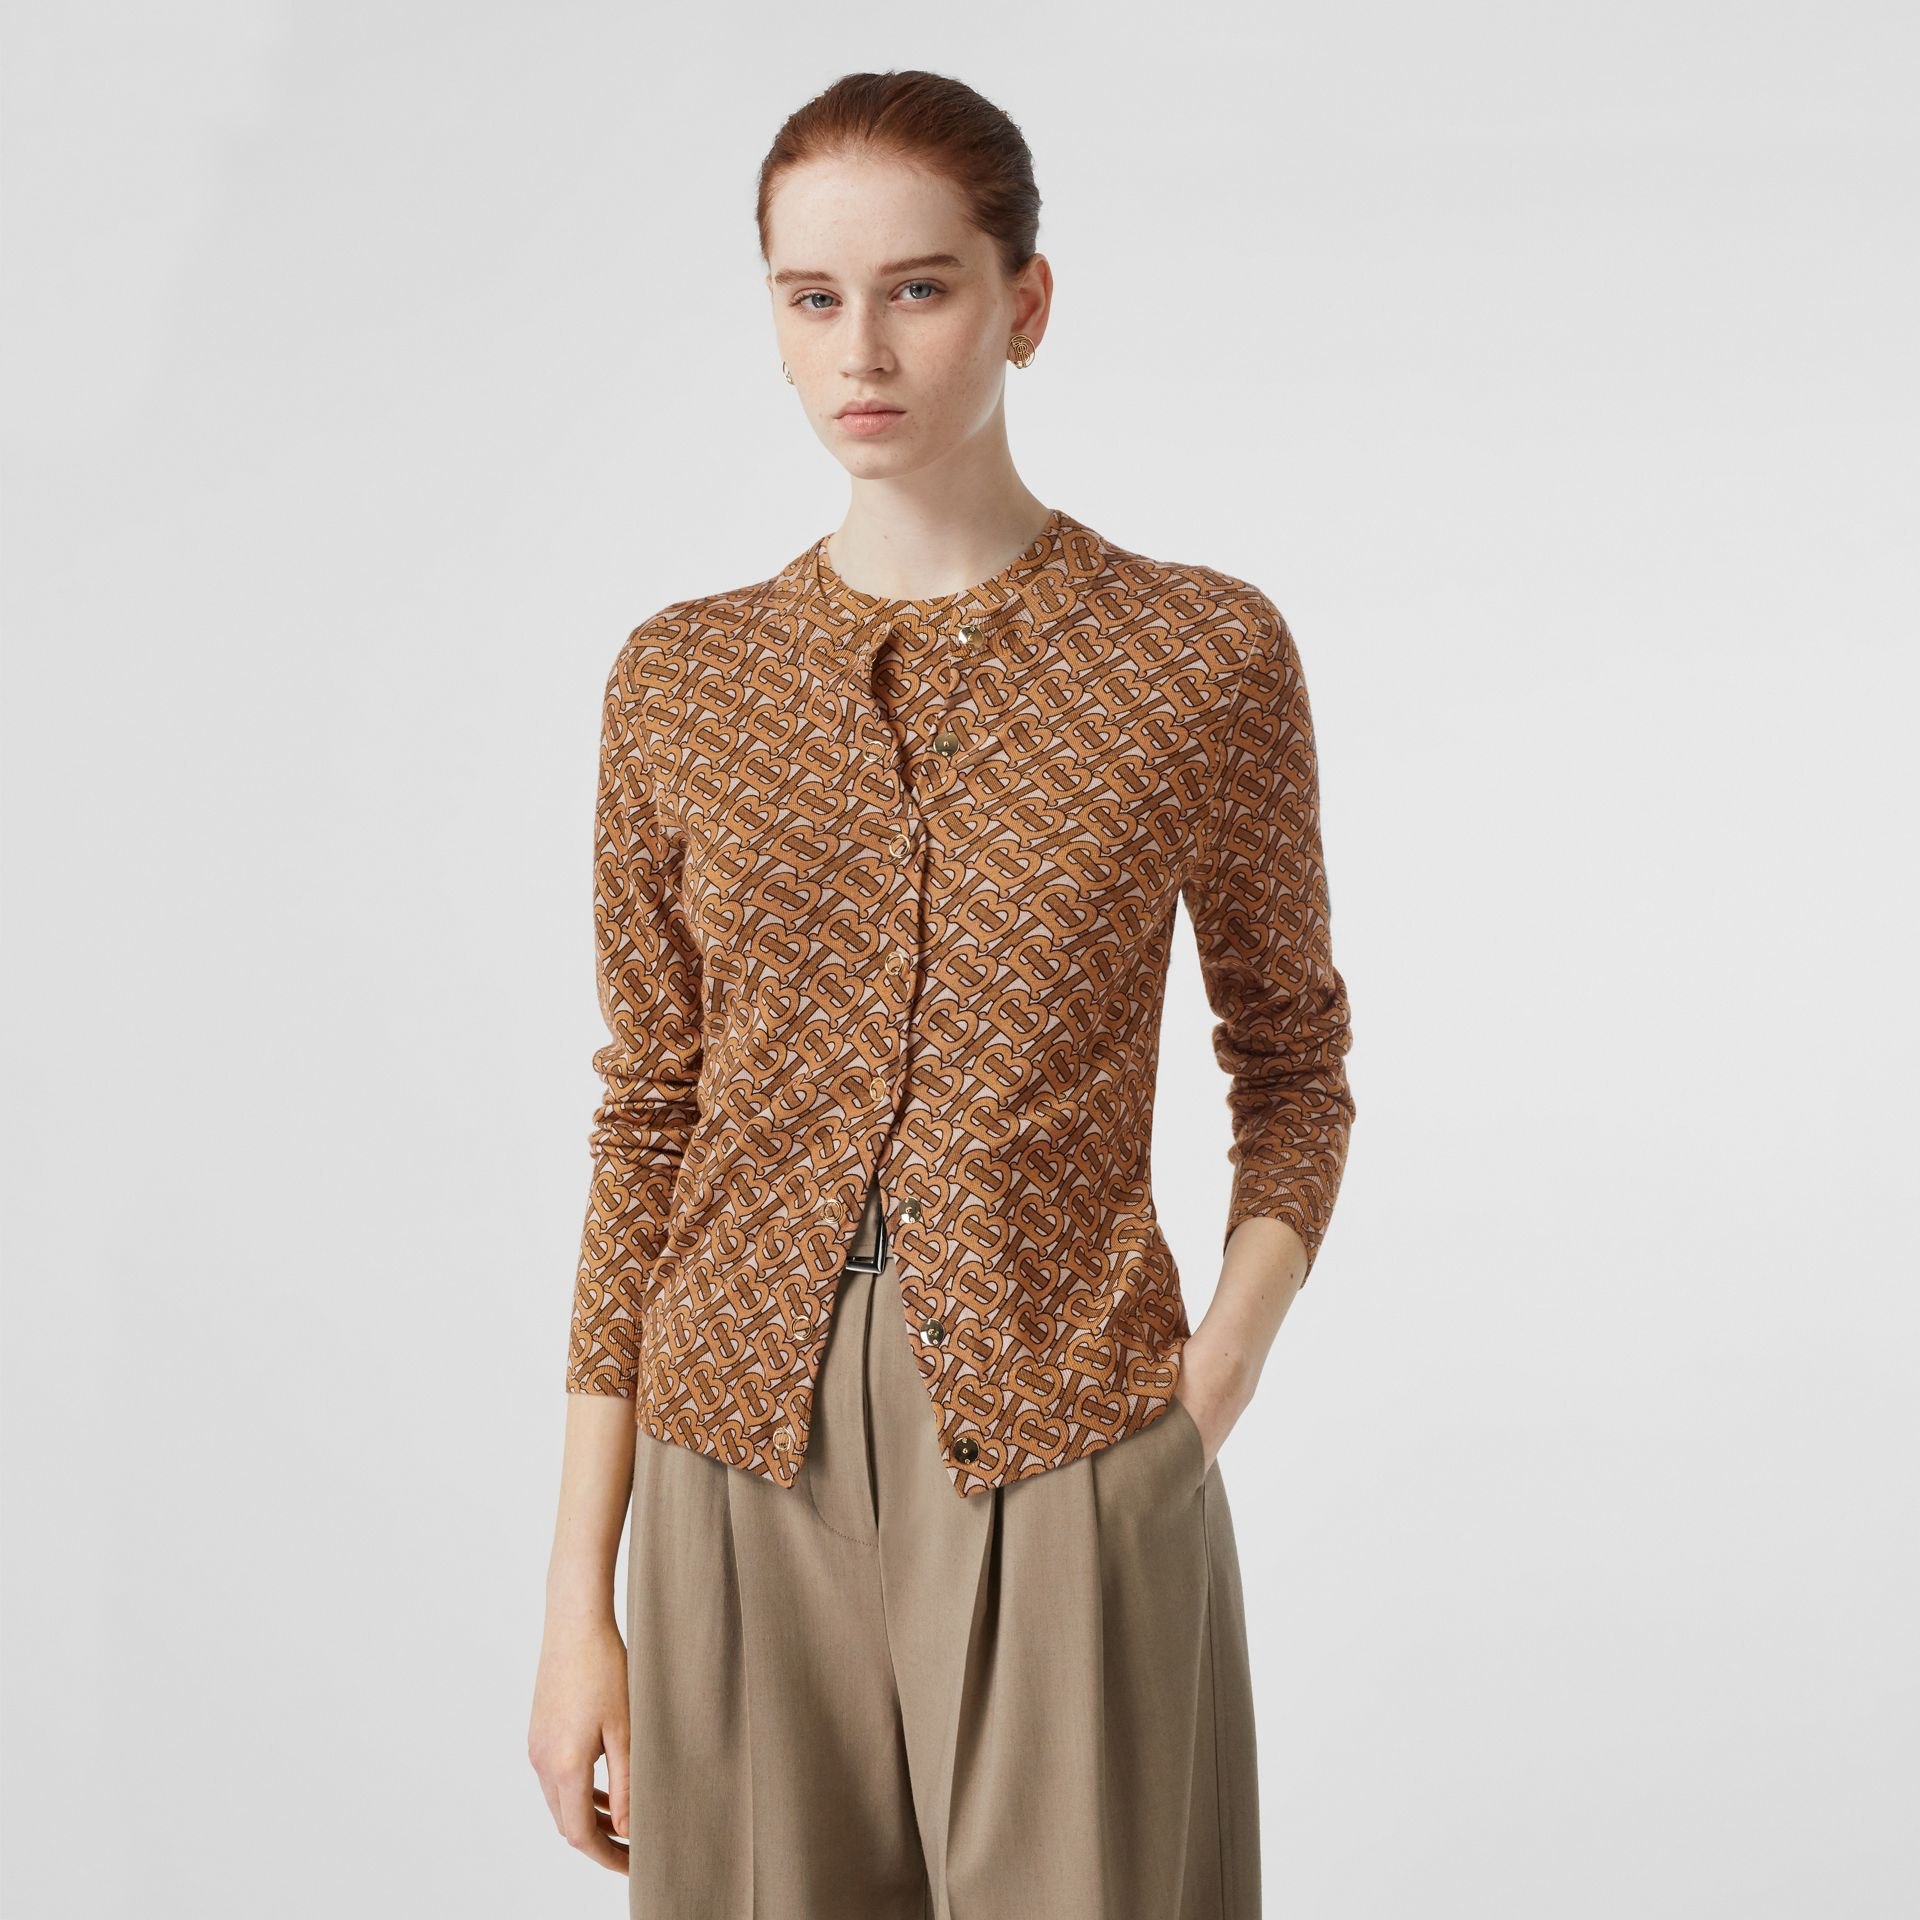 Monogram Print Merino Wool Cardigan in Beige - Women | Burberry United States - gallery image 4